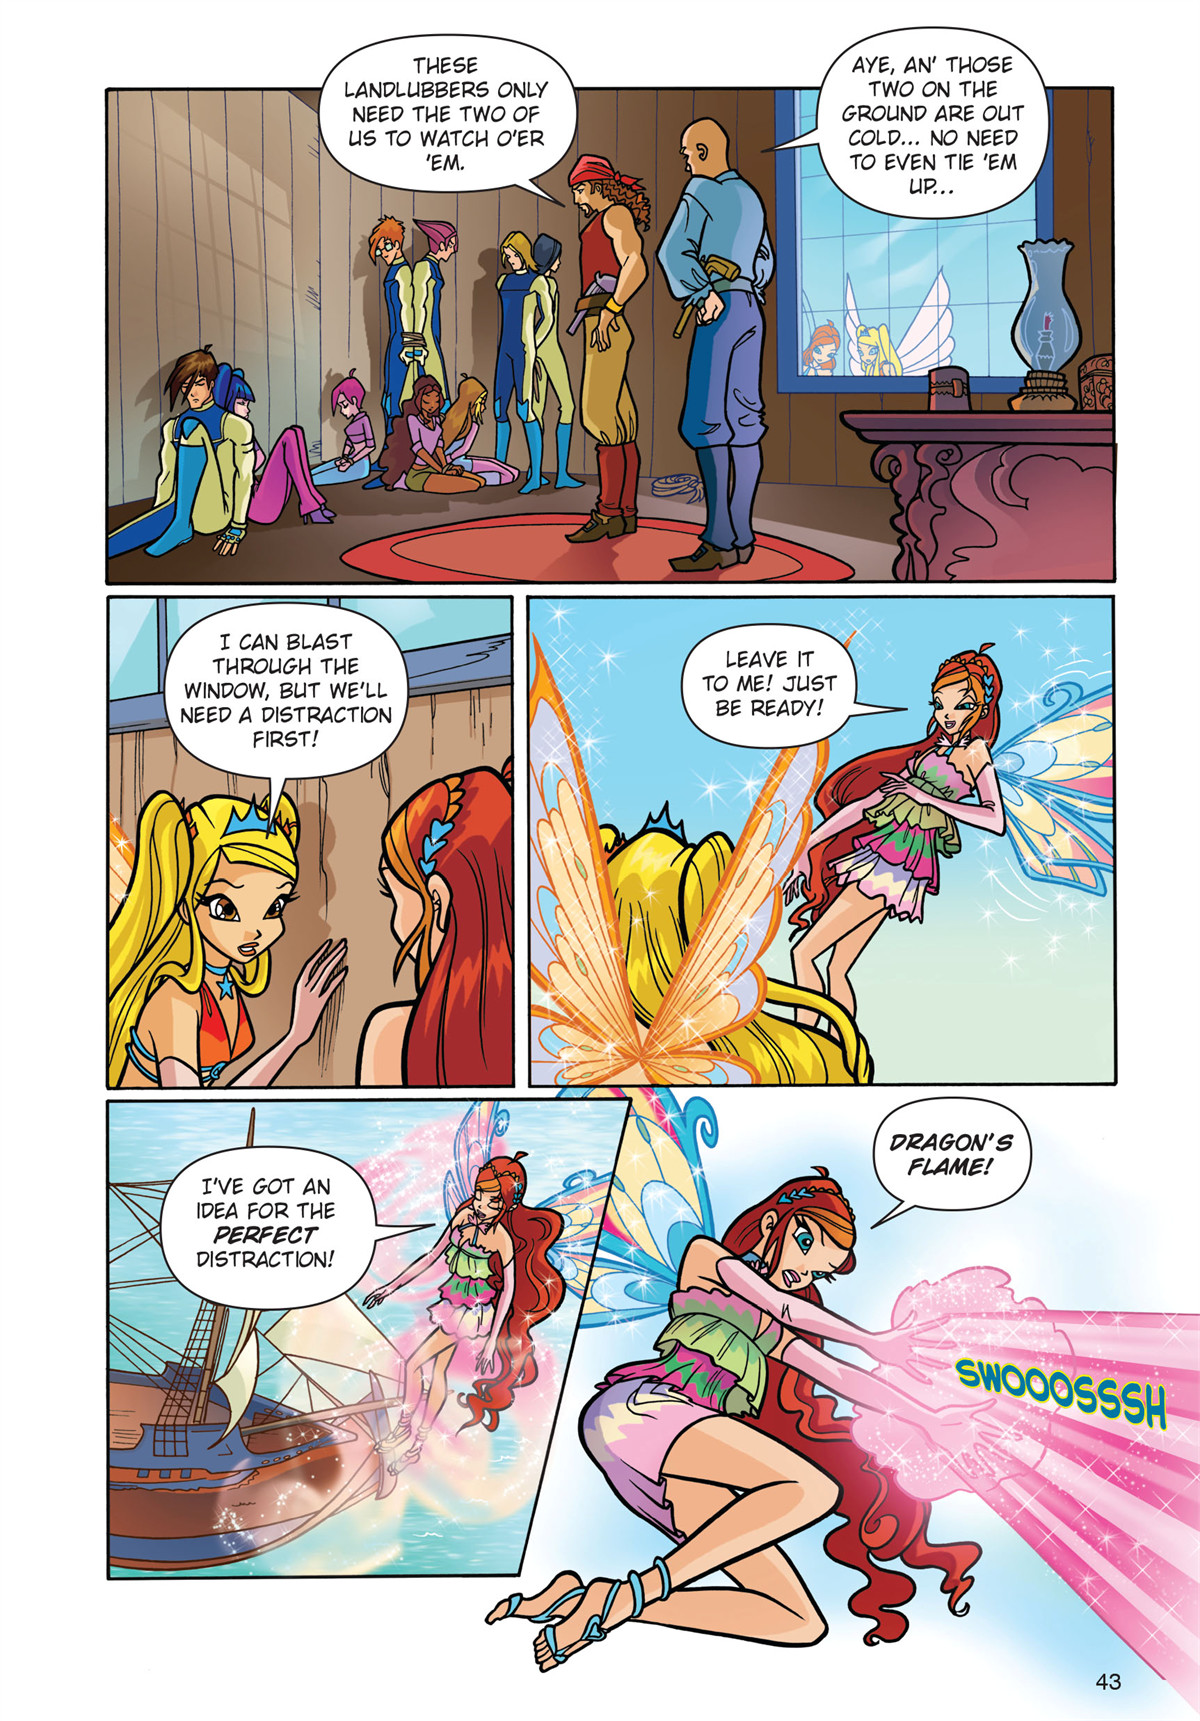 Winx club vol 7 9781421542041.in03